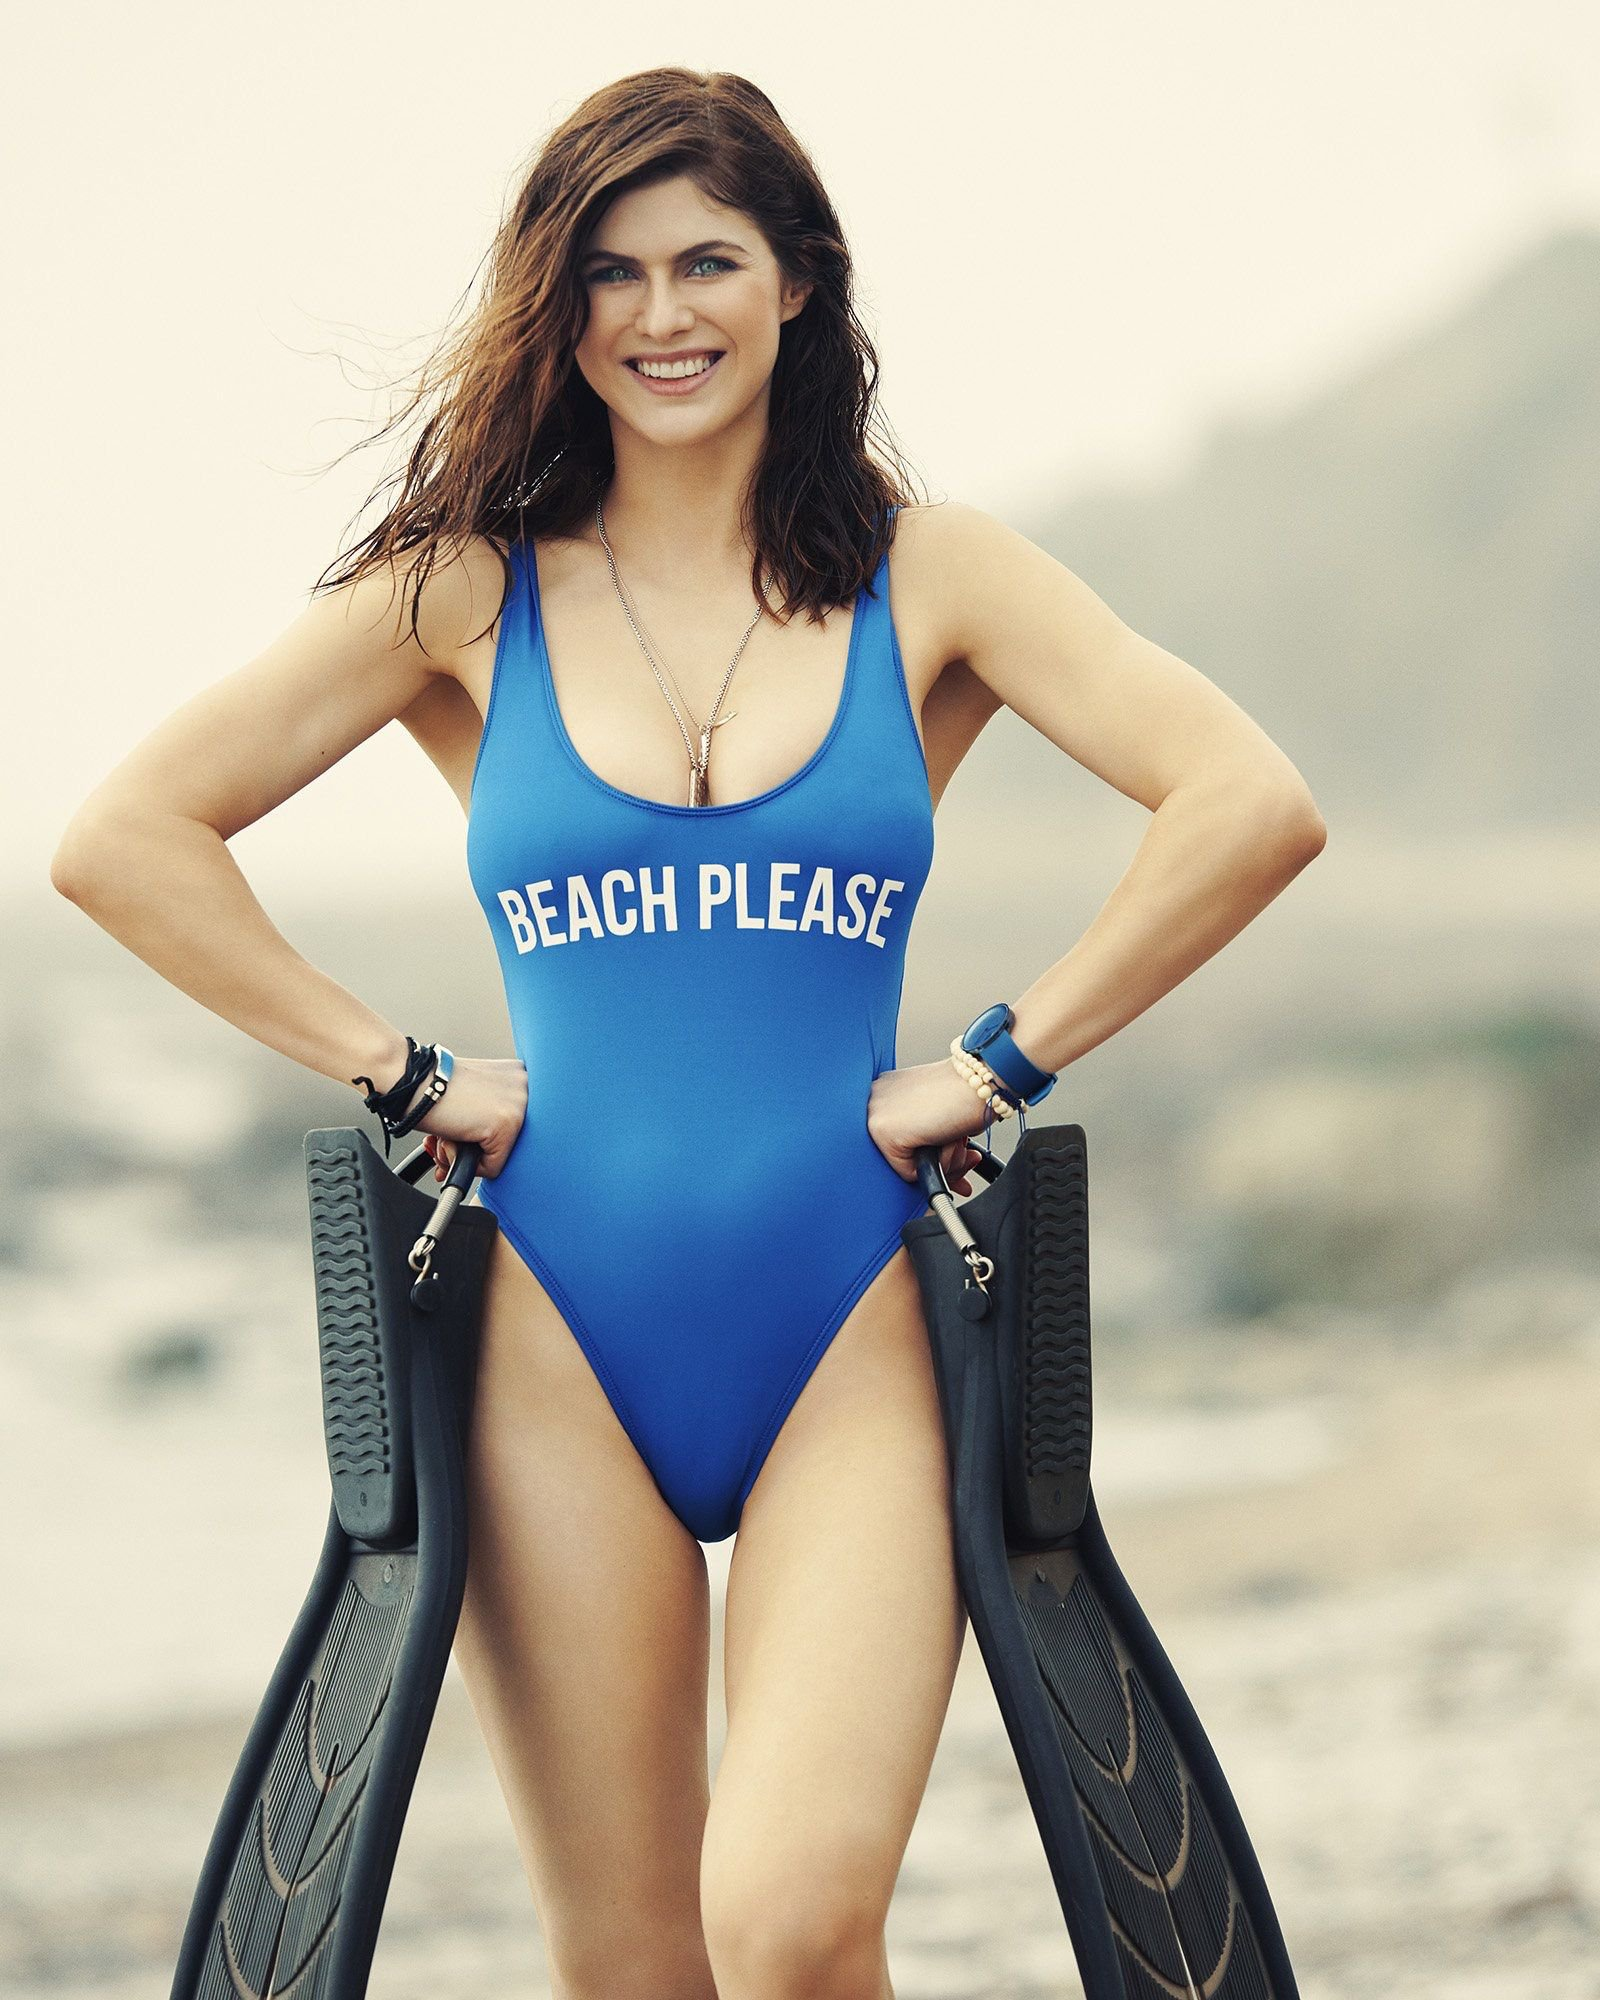 Alexandra Daddario Hot Blue Swimsuit Pics - Alexandra Daddario Net Worth, Pics, Wallpapers, Career and Biography